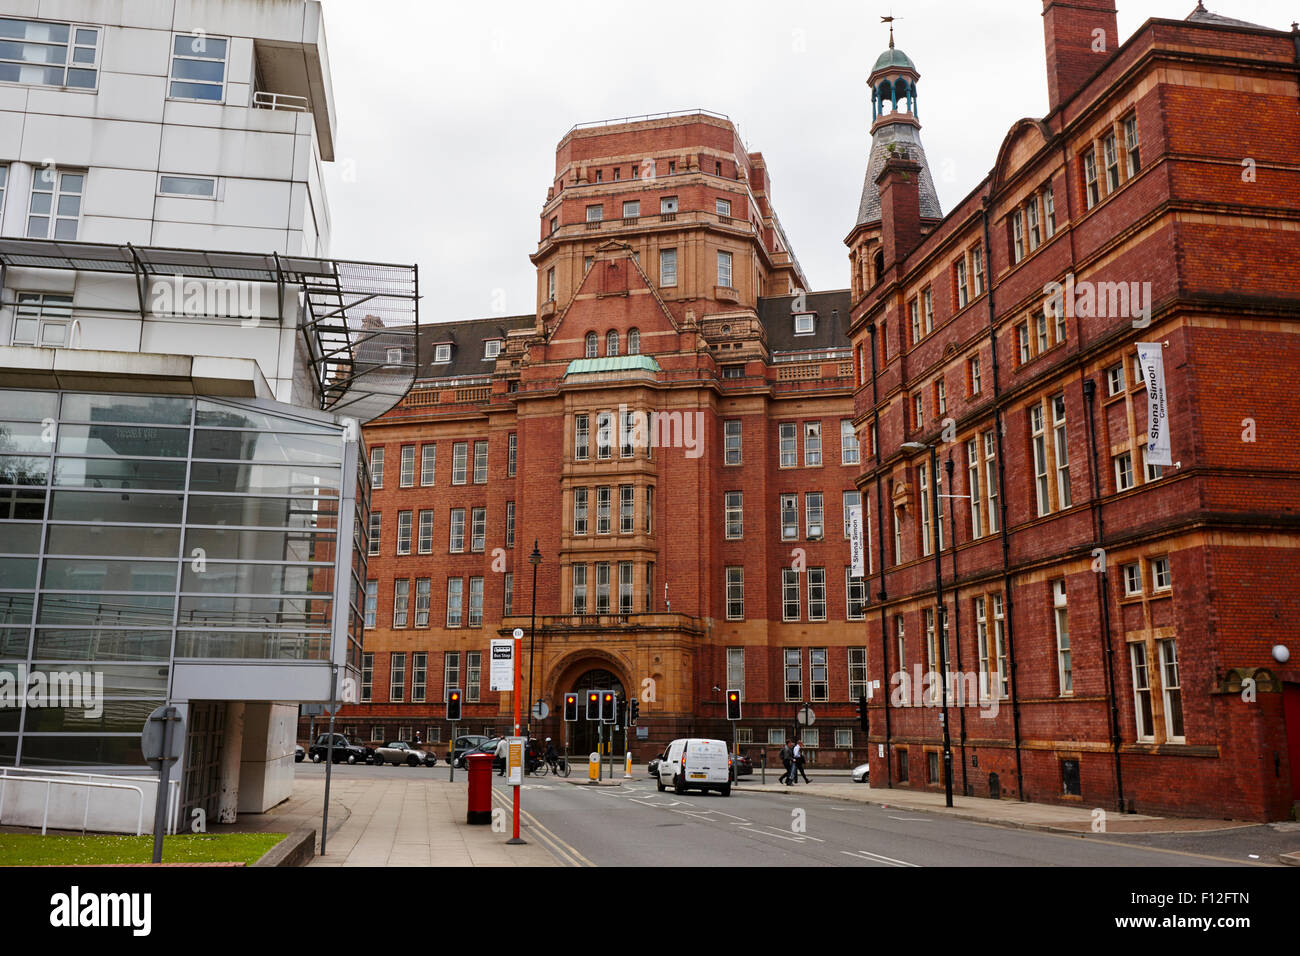 Where Is Sackville Street Building University Of Manchester